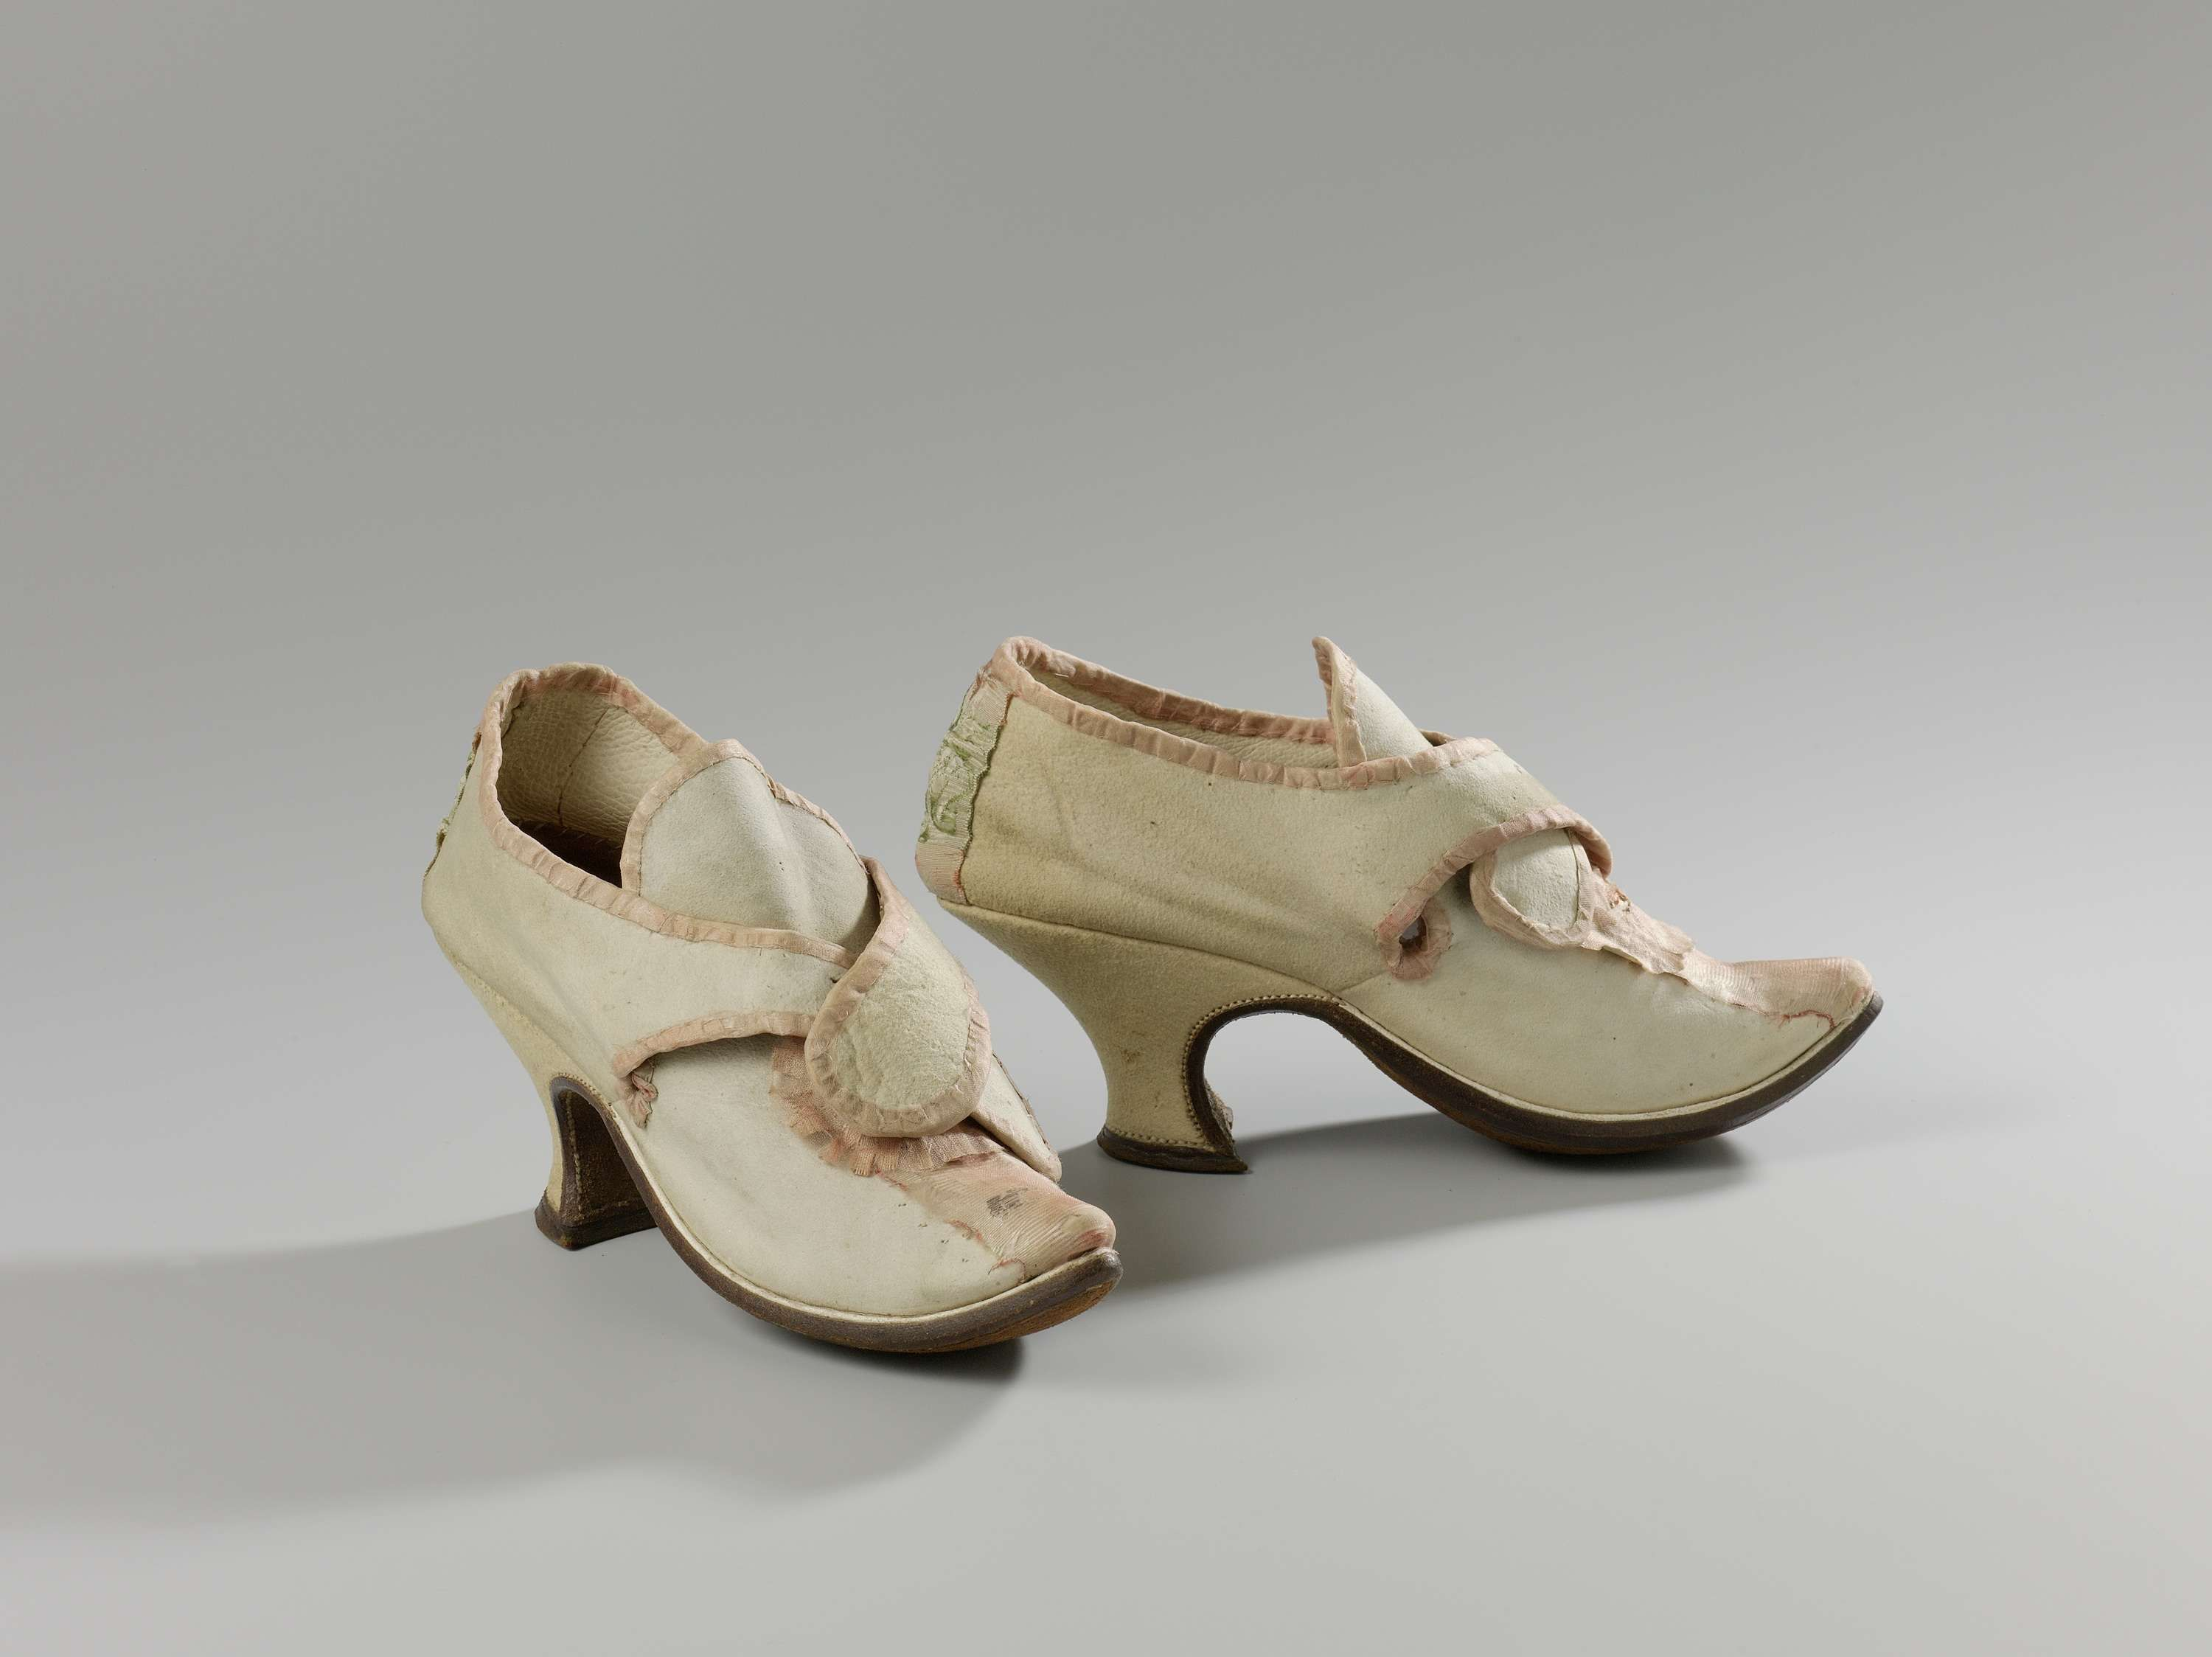 1750, the Netherlands - Shoes - Leather, silk